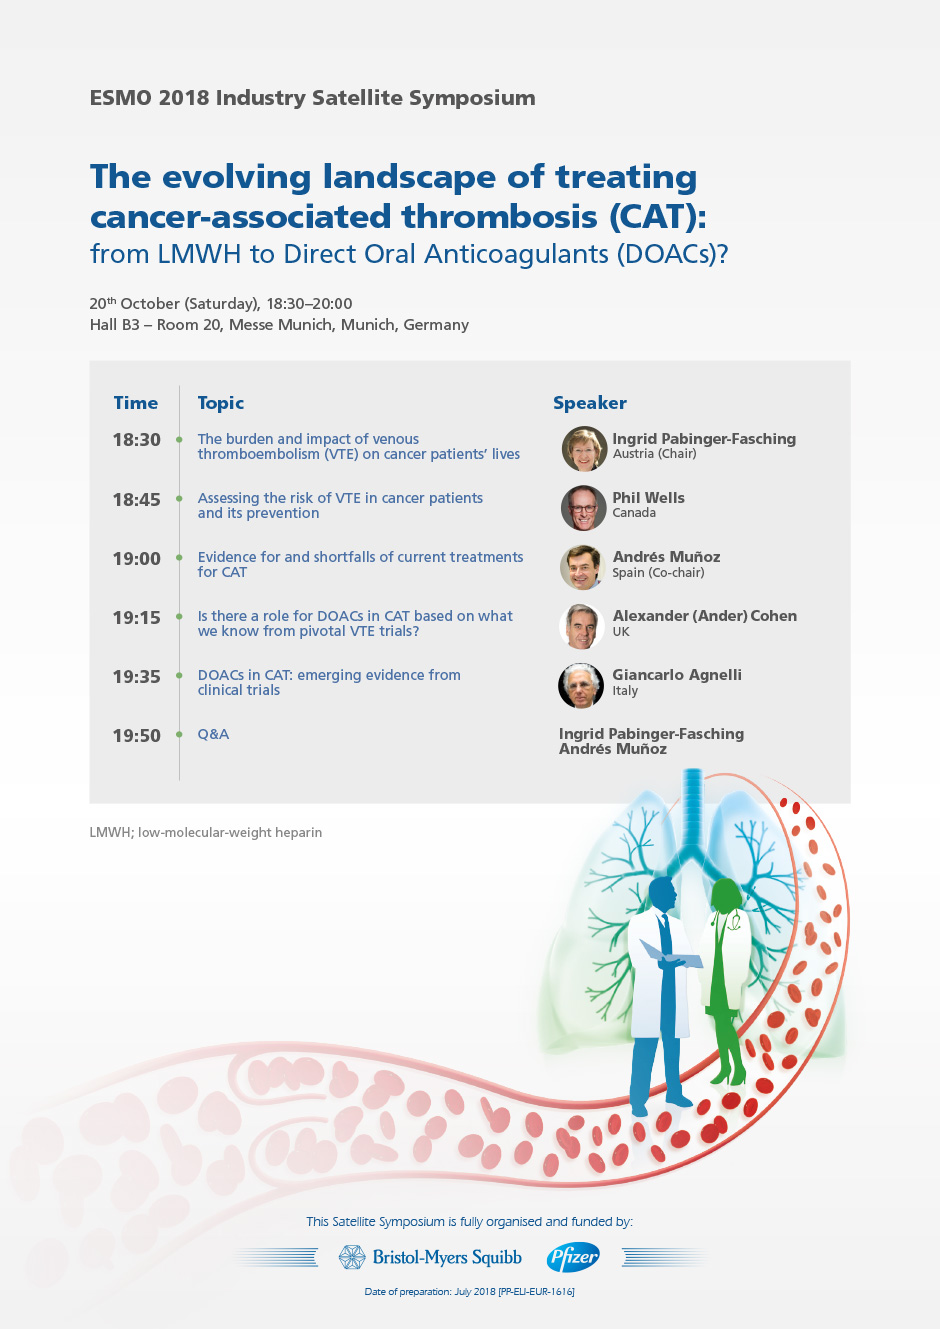 The Evolving Landscape of Treating Cancer-Associated Thrombosis (CAT): From LMWH to Direct Oral Anticoagulants (DOACs)?